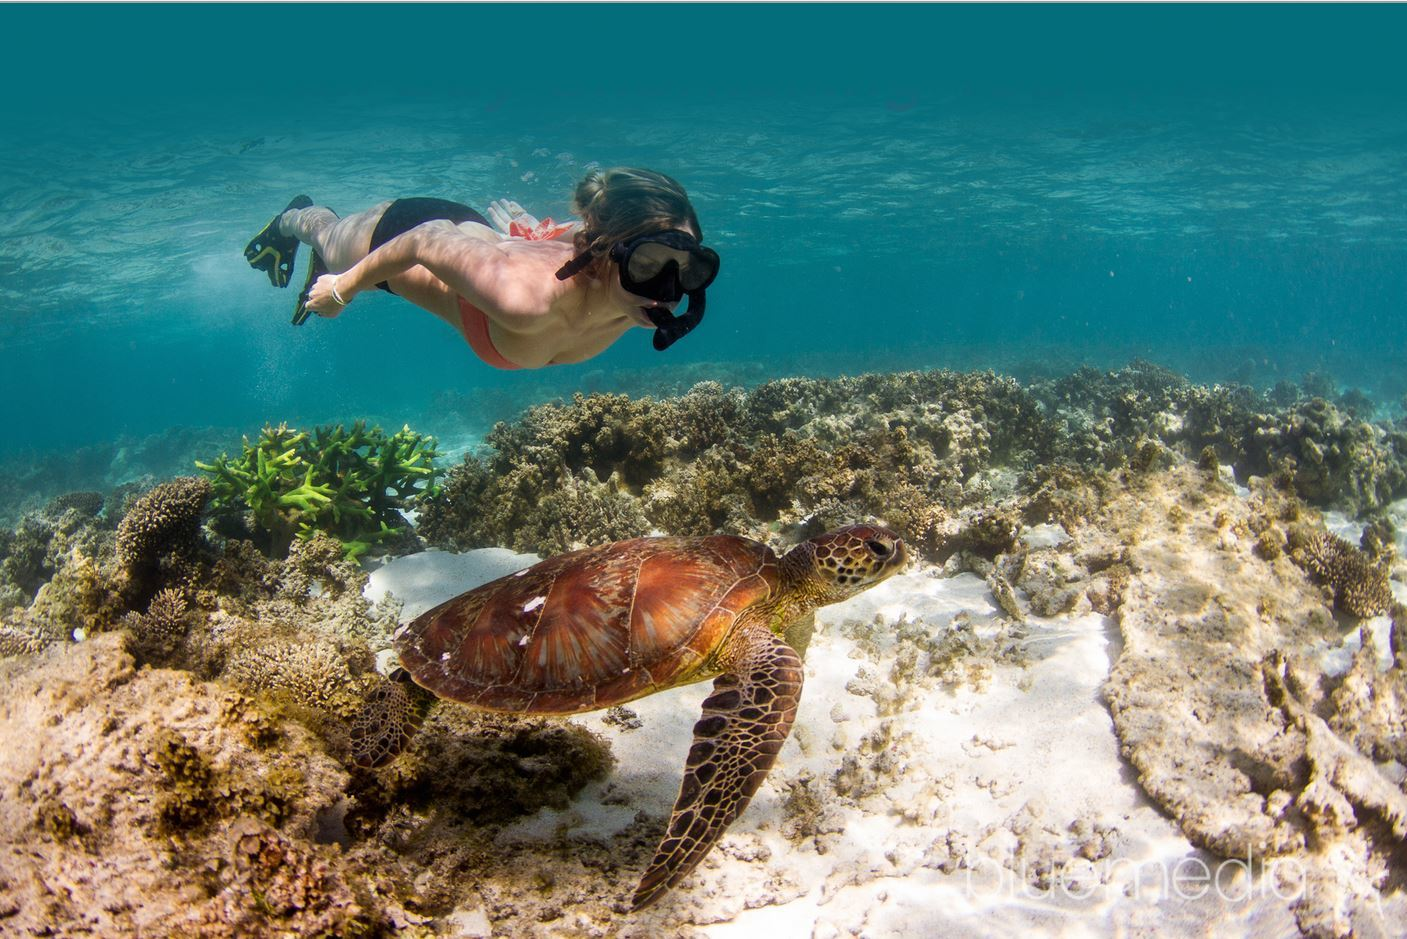 Ningaloo reef snorkel adventure australia dive - Ningaloo reef dive ...